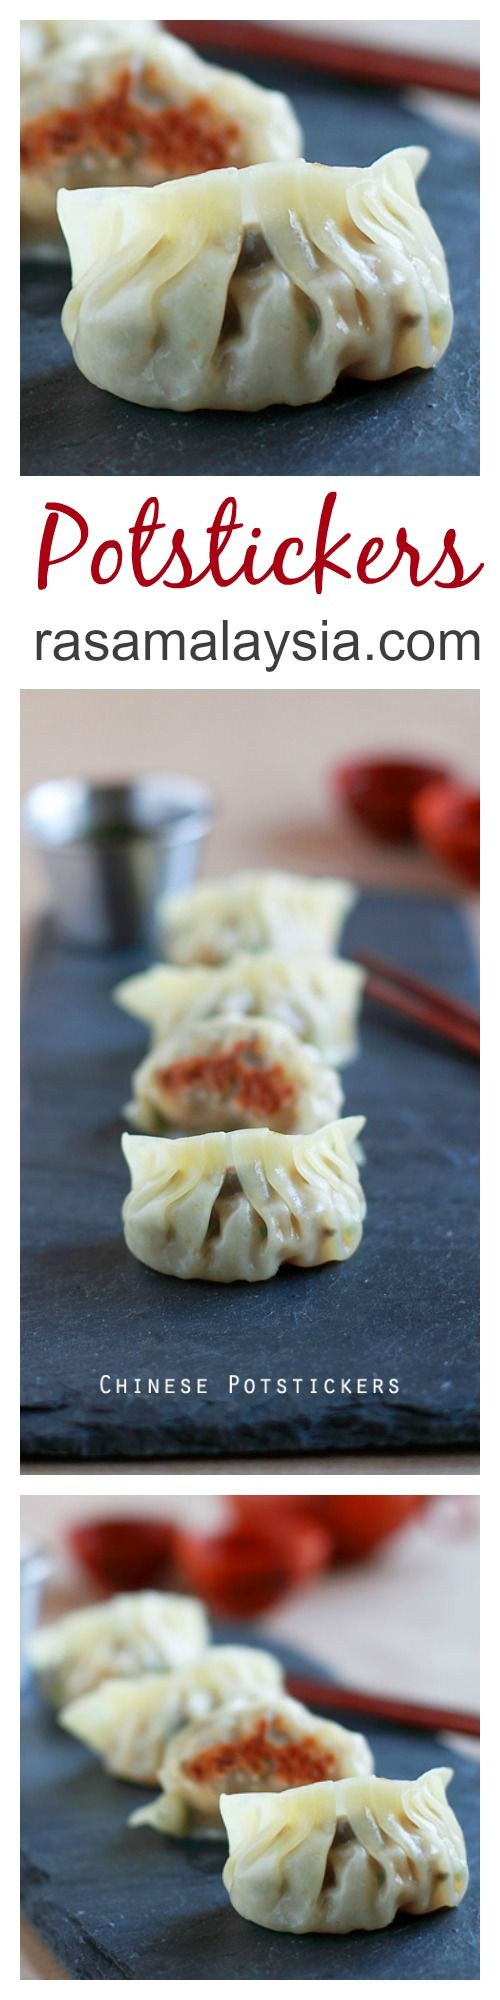 {China} Potstickers are Chinese dumplings with ground meat, veggie, pan-fried and then steamed. Easy and the BEST potstickers recipe you can make at home | rasamalaysia.com